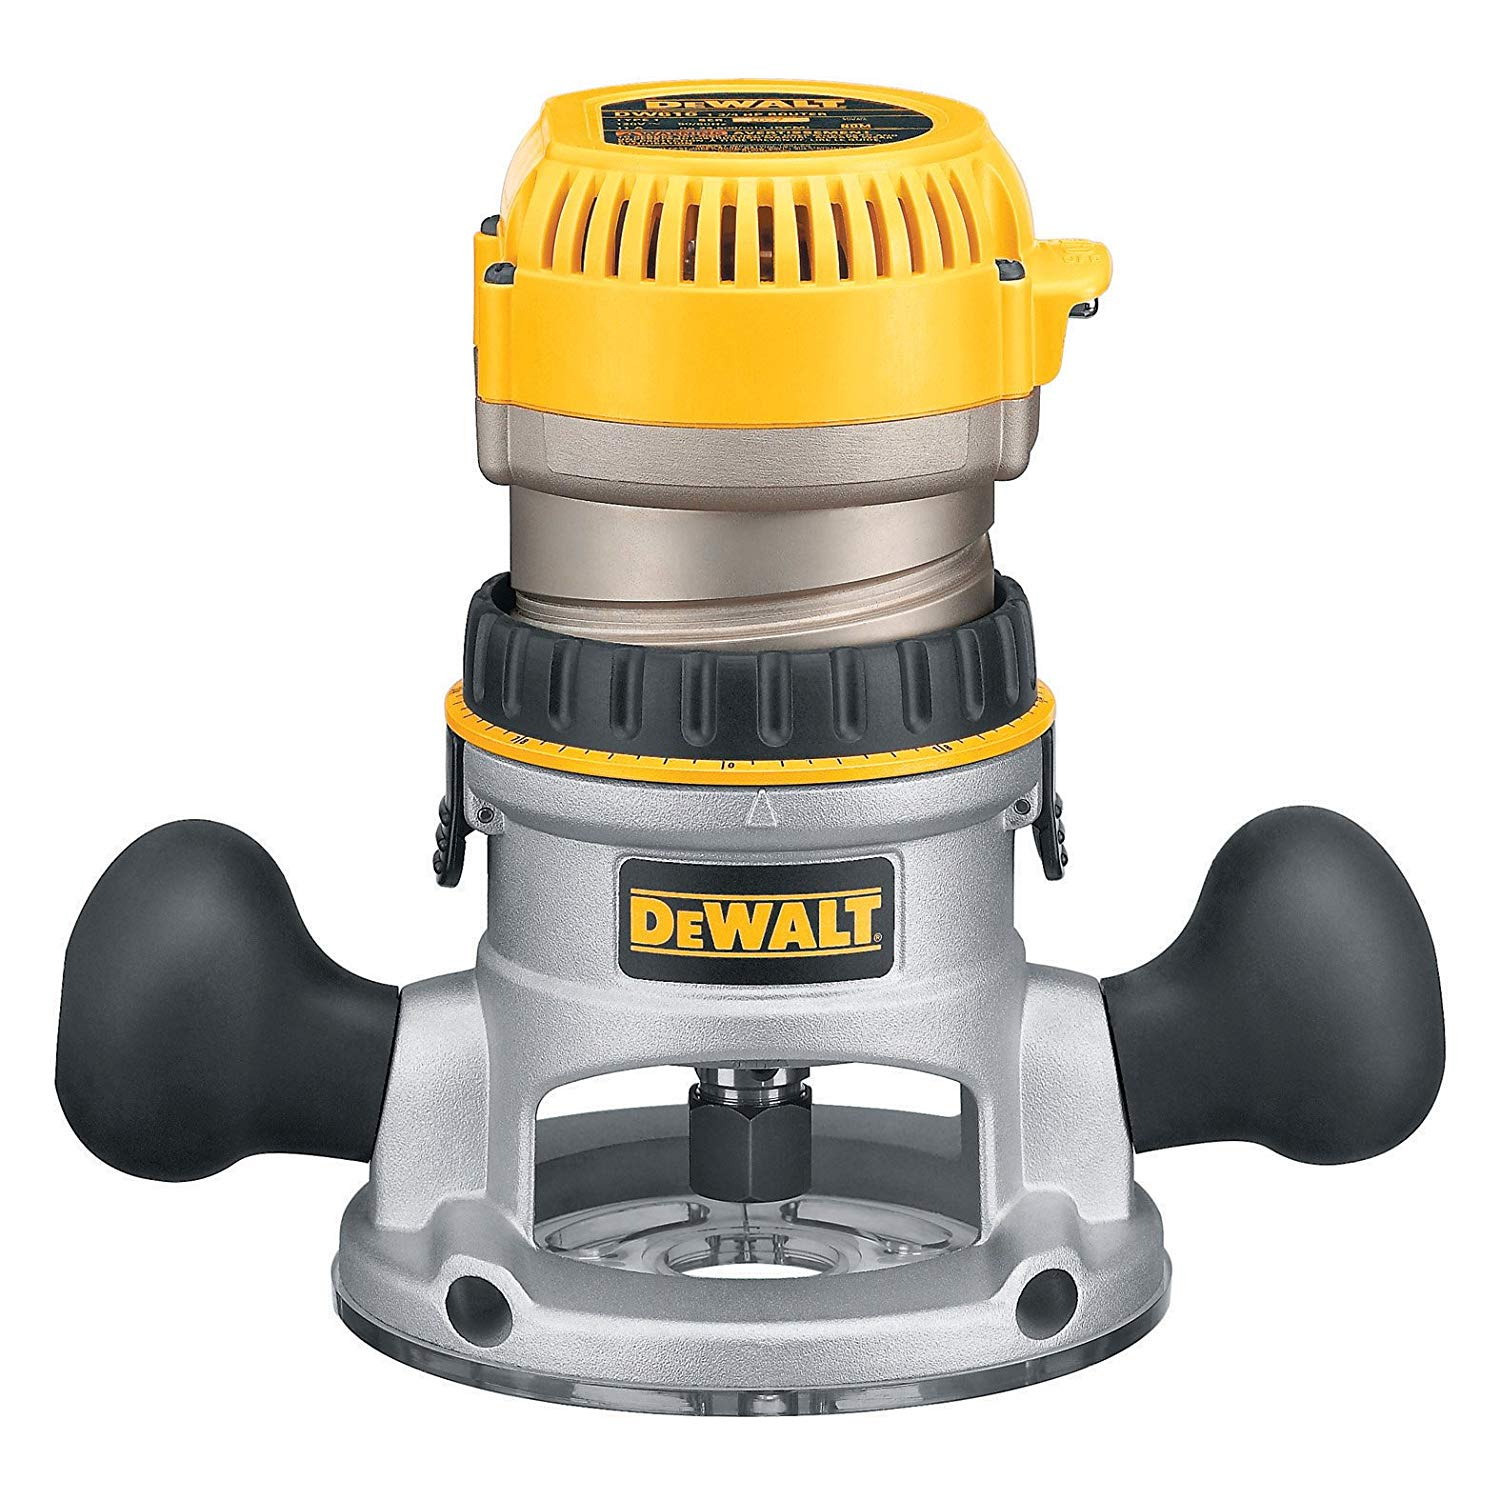 DEWALT DW616 1-3:4-Horsepower Fixed Base Router